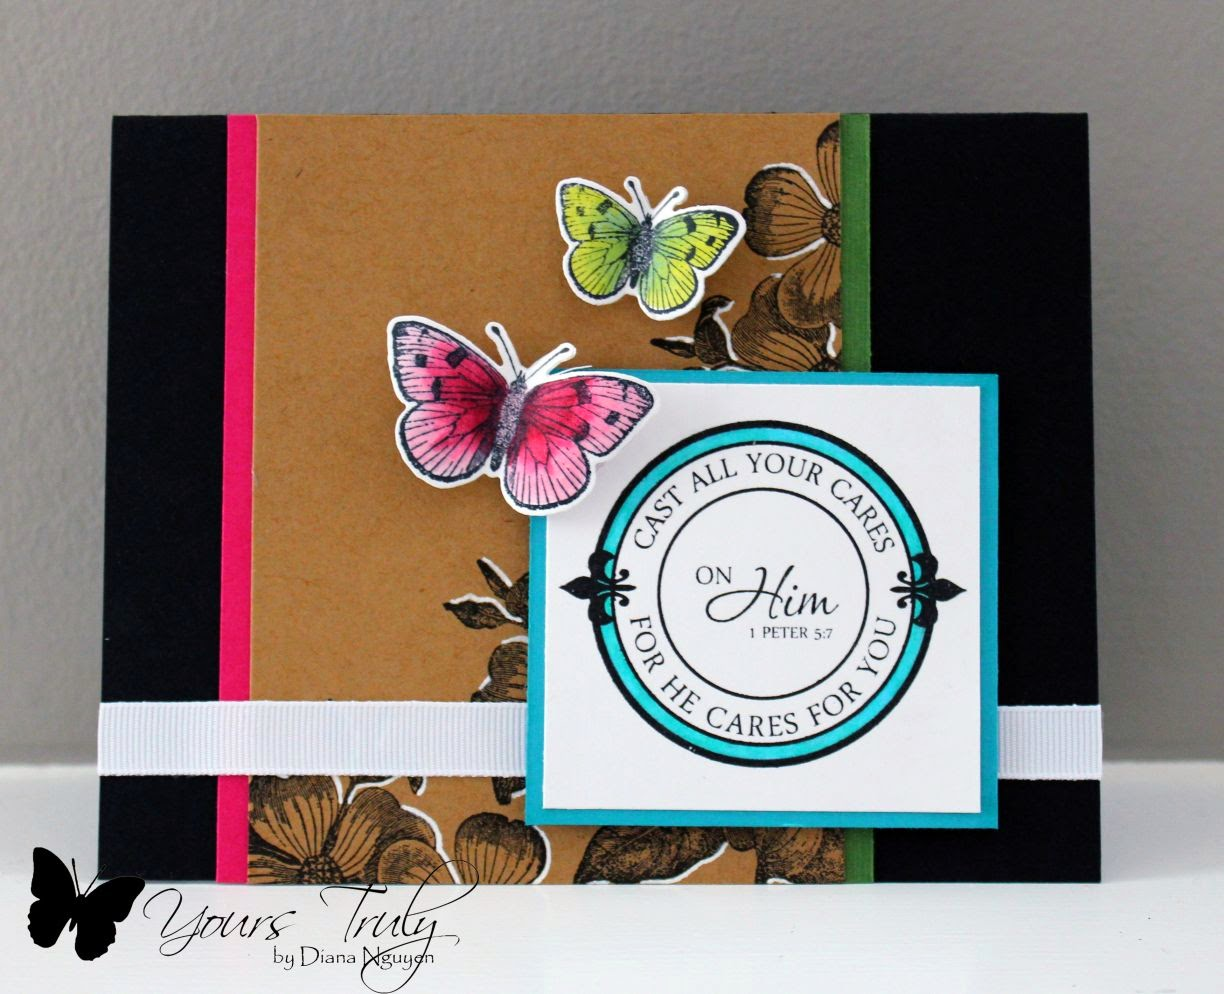 Diana Nguyen, butterflies, Hero Arts, Verve, scripture, card